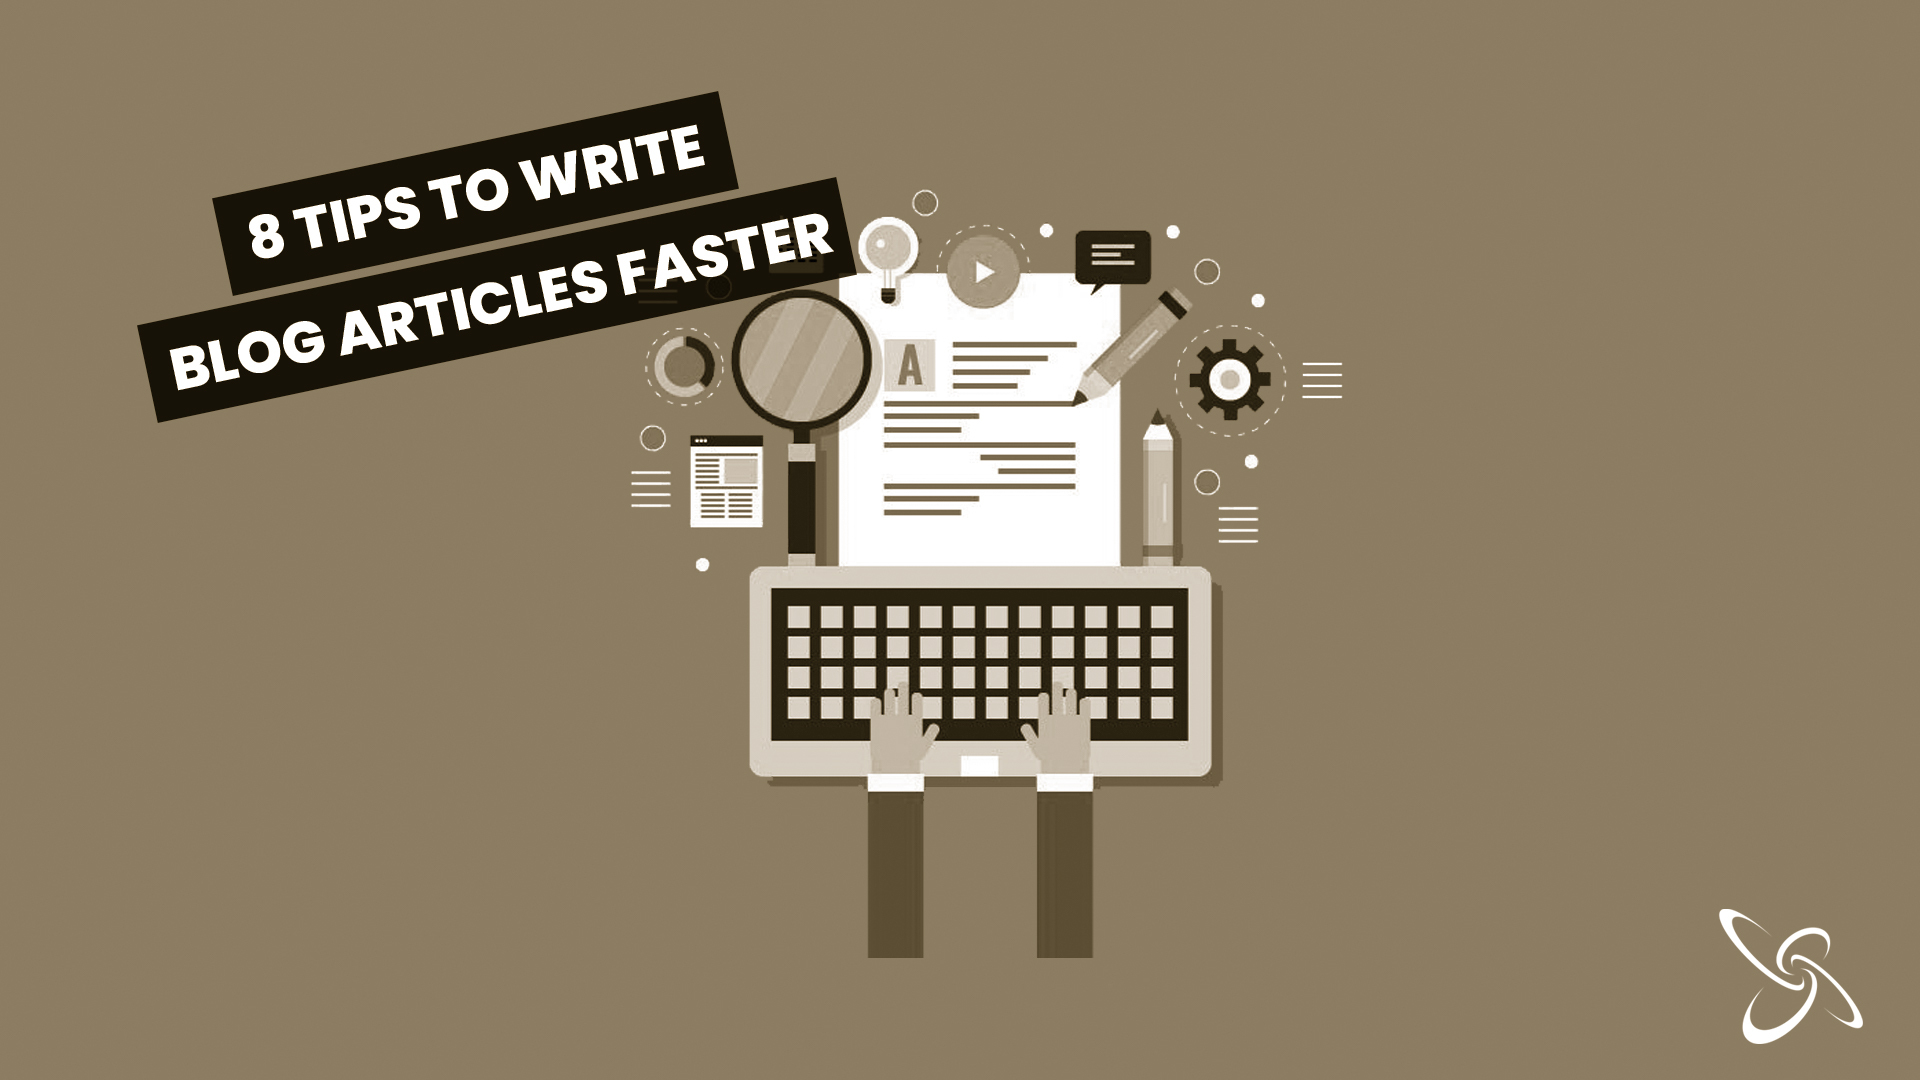 8 tips to write blog articles faster